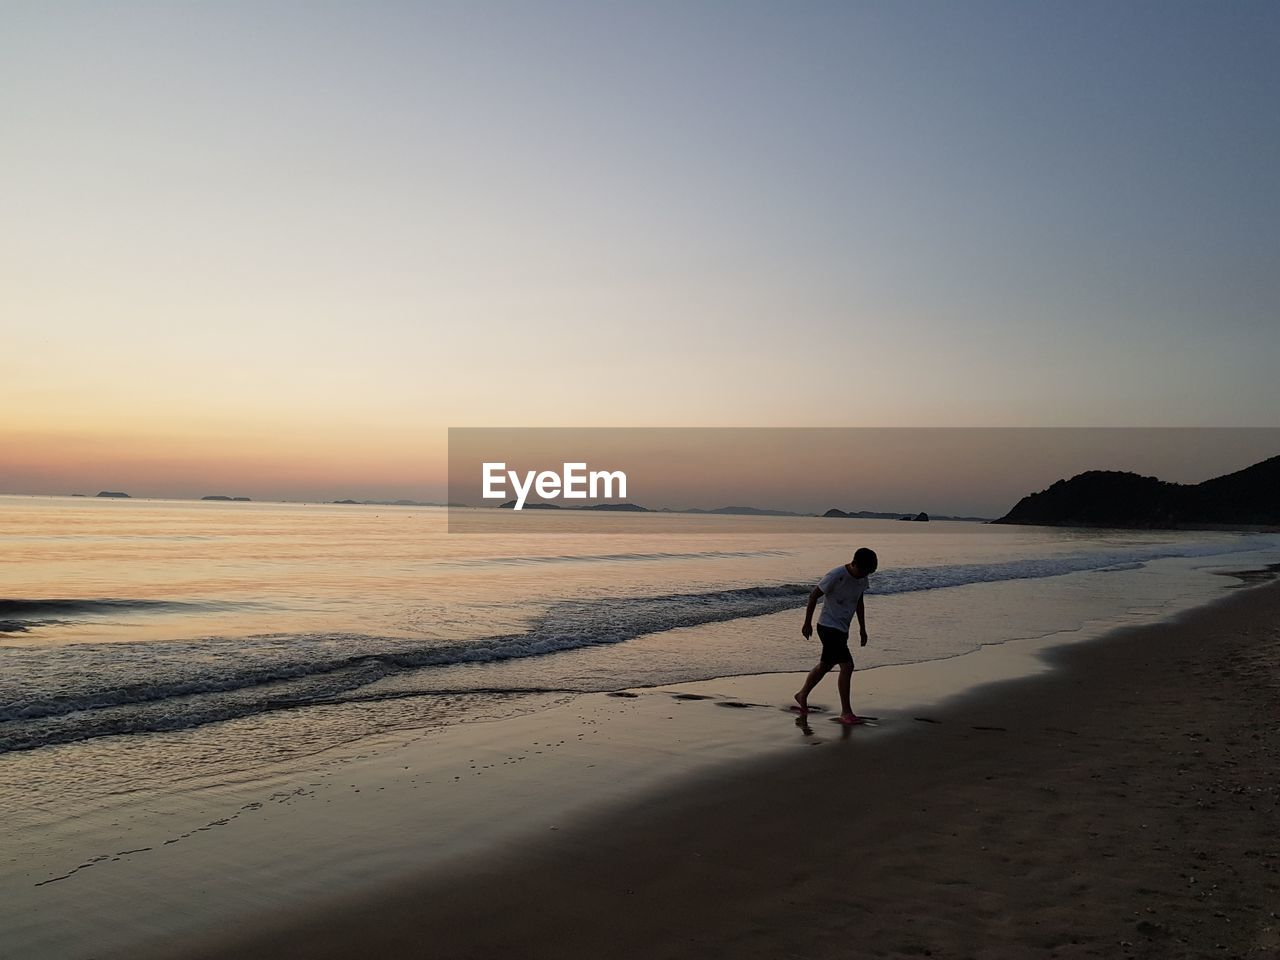 beach, sky, land, sea, water, real people, beauty in nature, sunset, full length, sand, scenics - nature, one person, men, walking, lifestyles, leisure activity, nature, clear sky, copy space